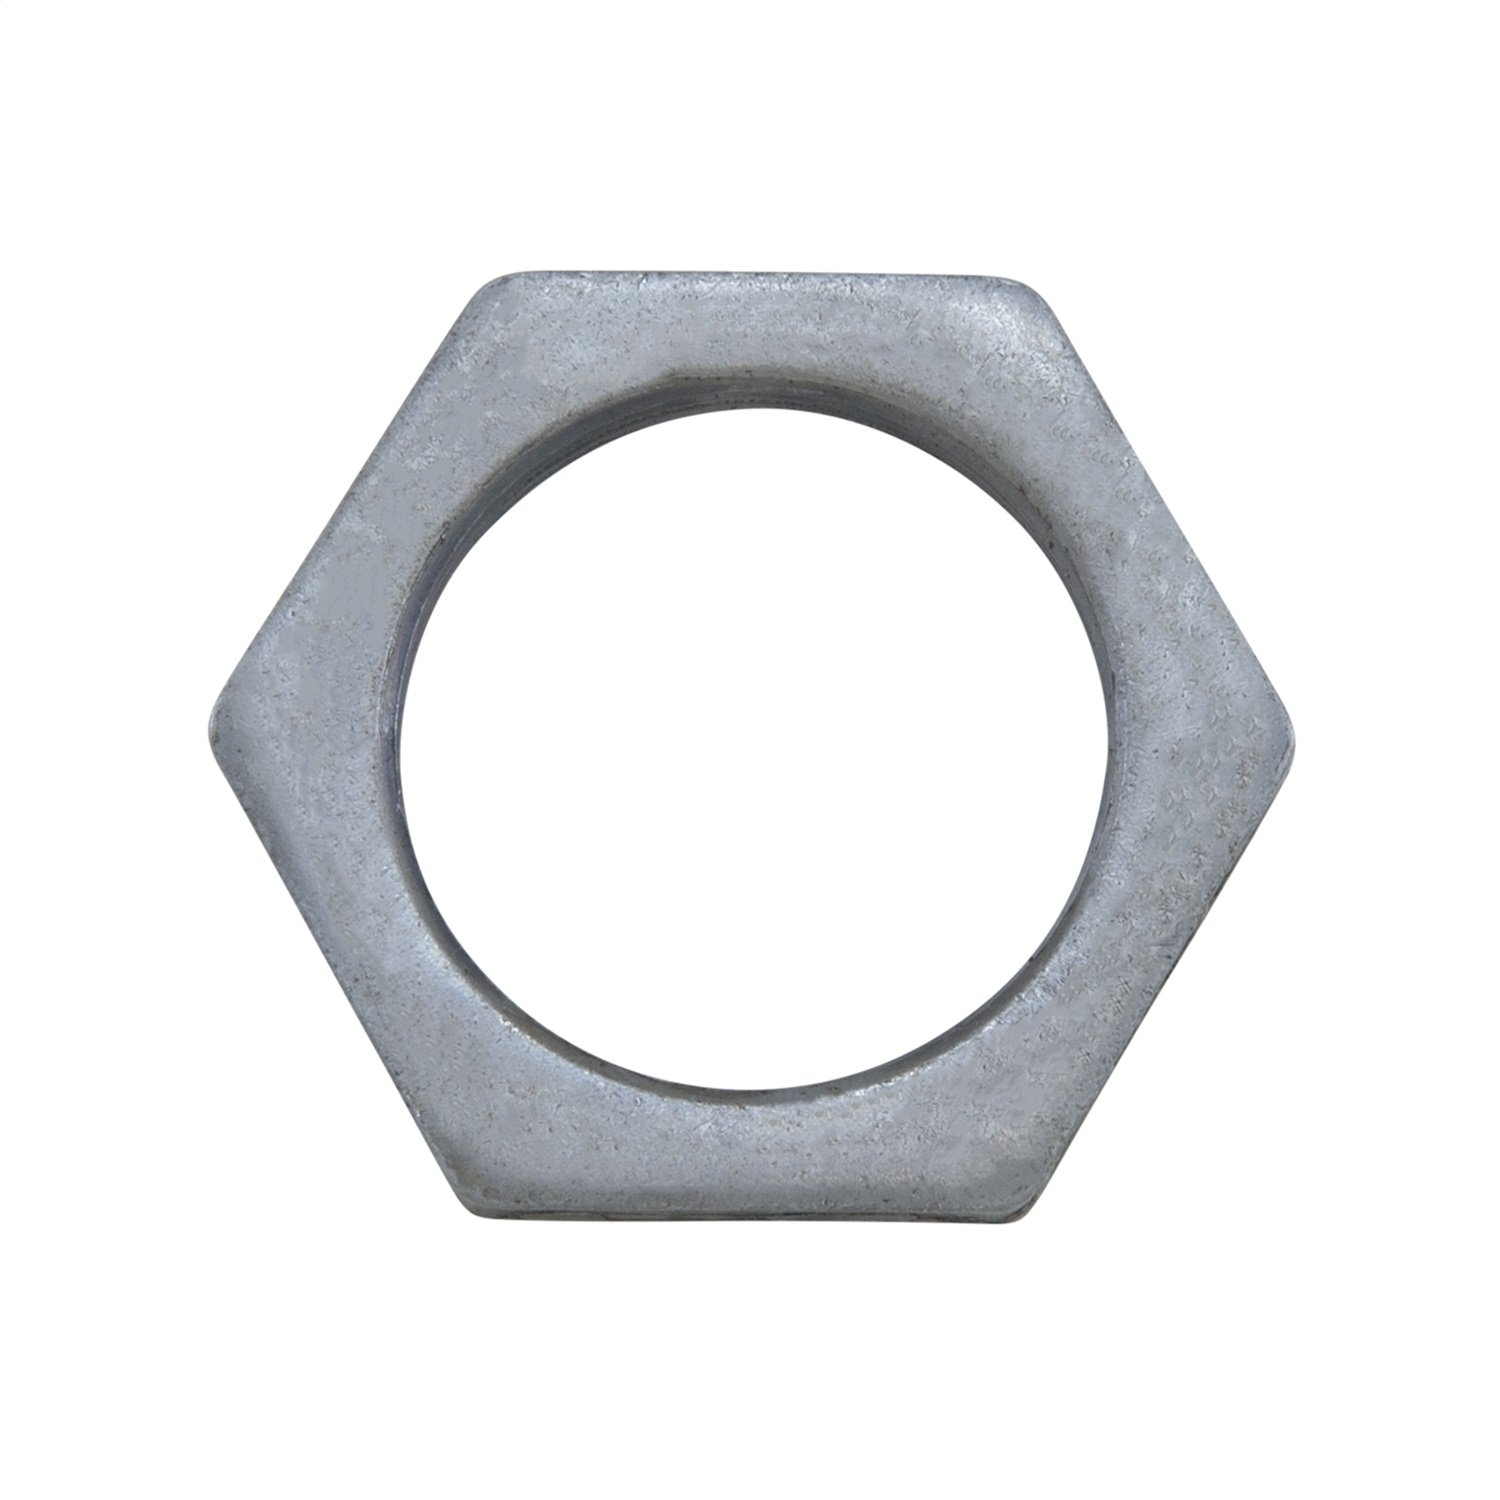 Yukon (YSPSP-003) 1.750'' I.D. 6-Sided Spindle Nut for Dana 60 Differential